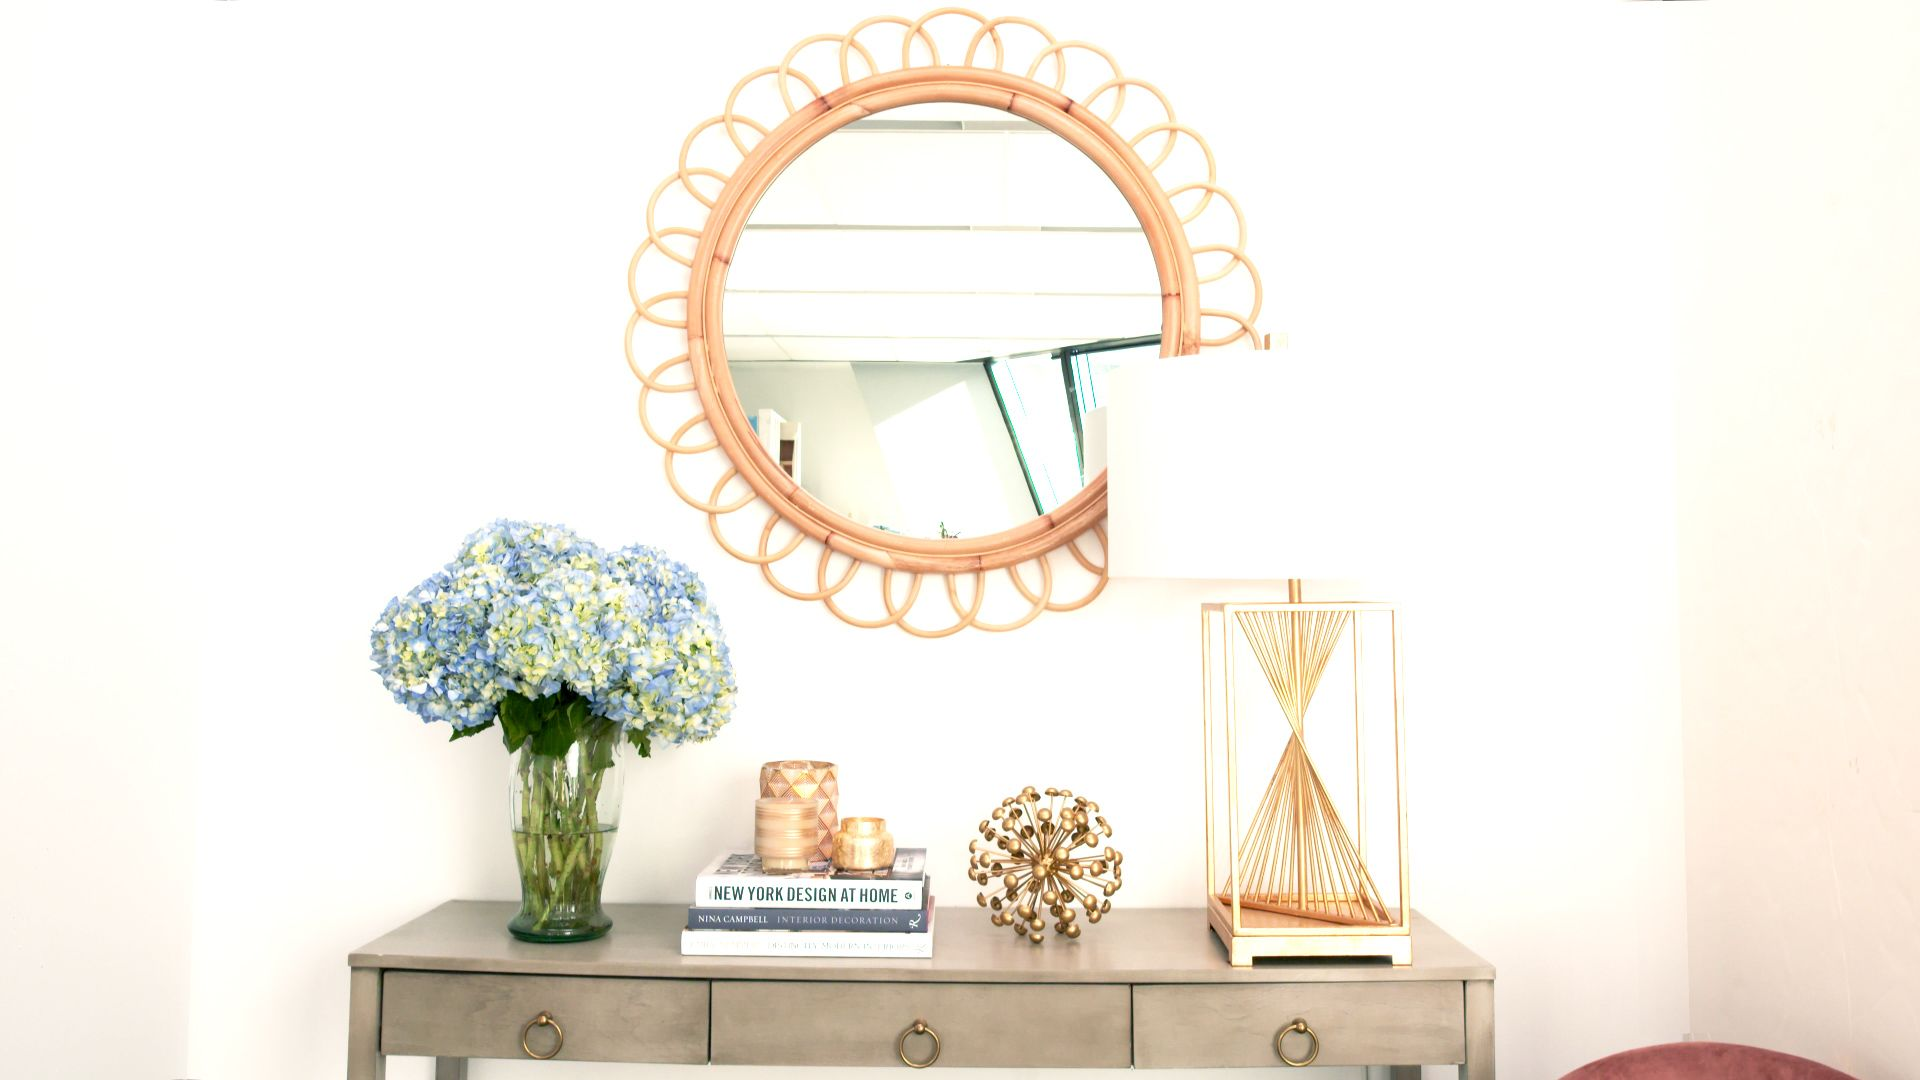 The Best Way to Hang a Wall Mirror